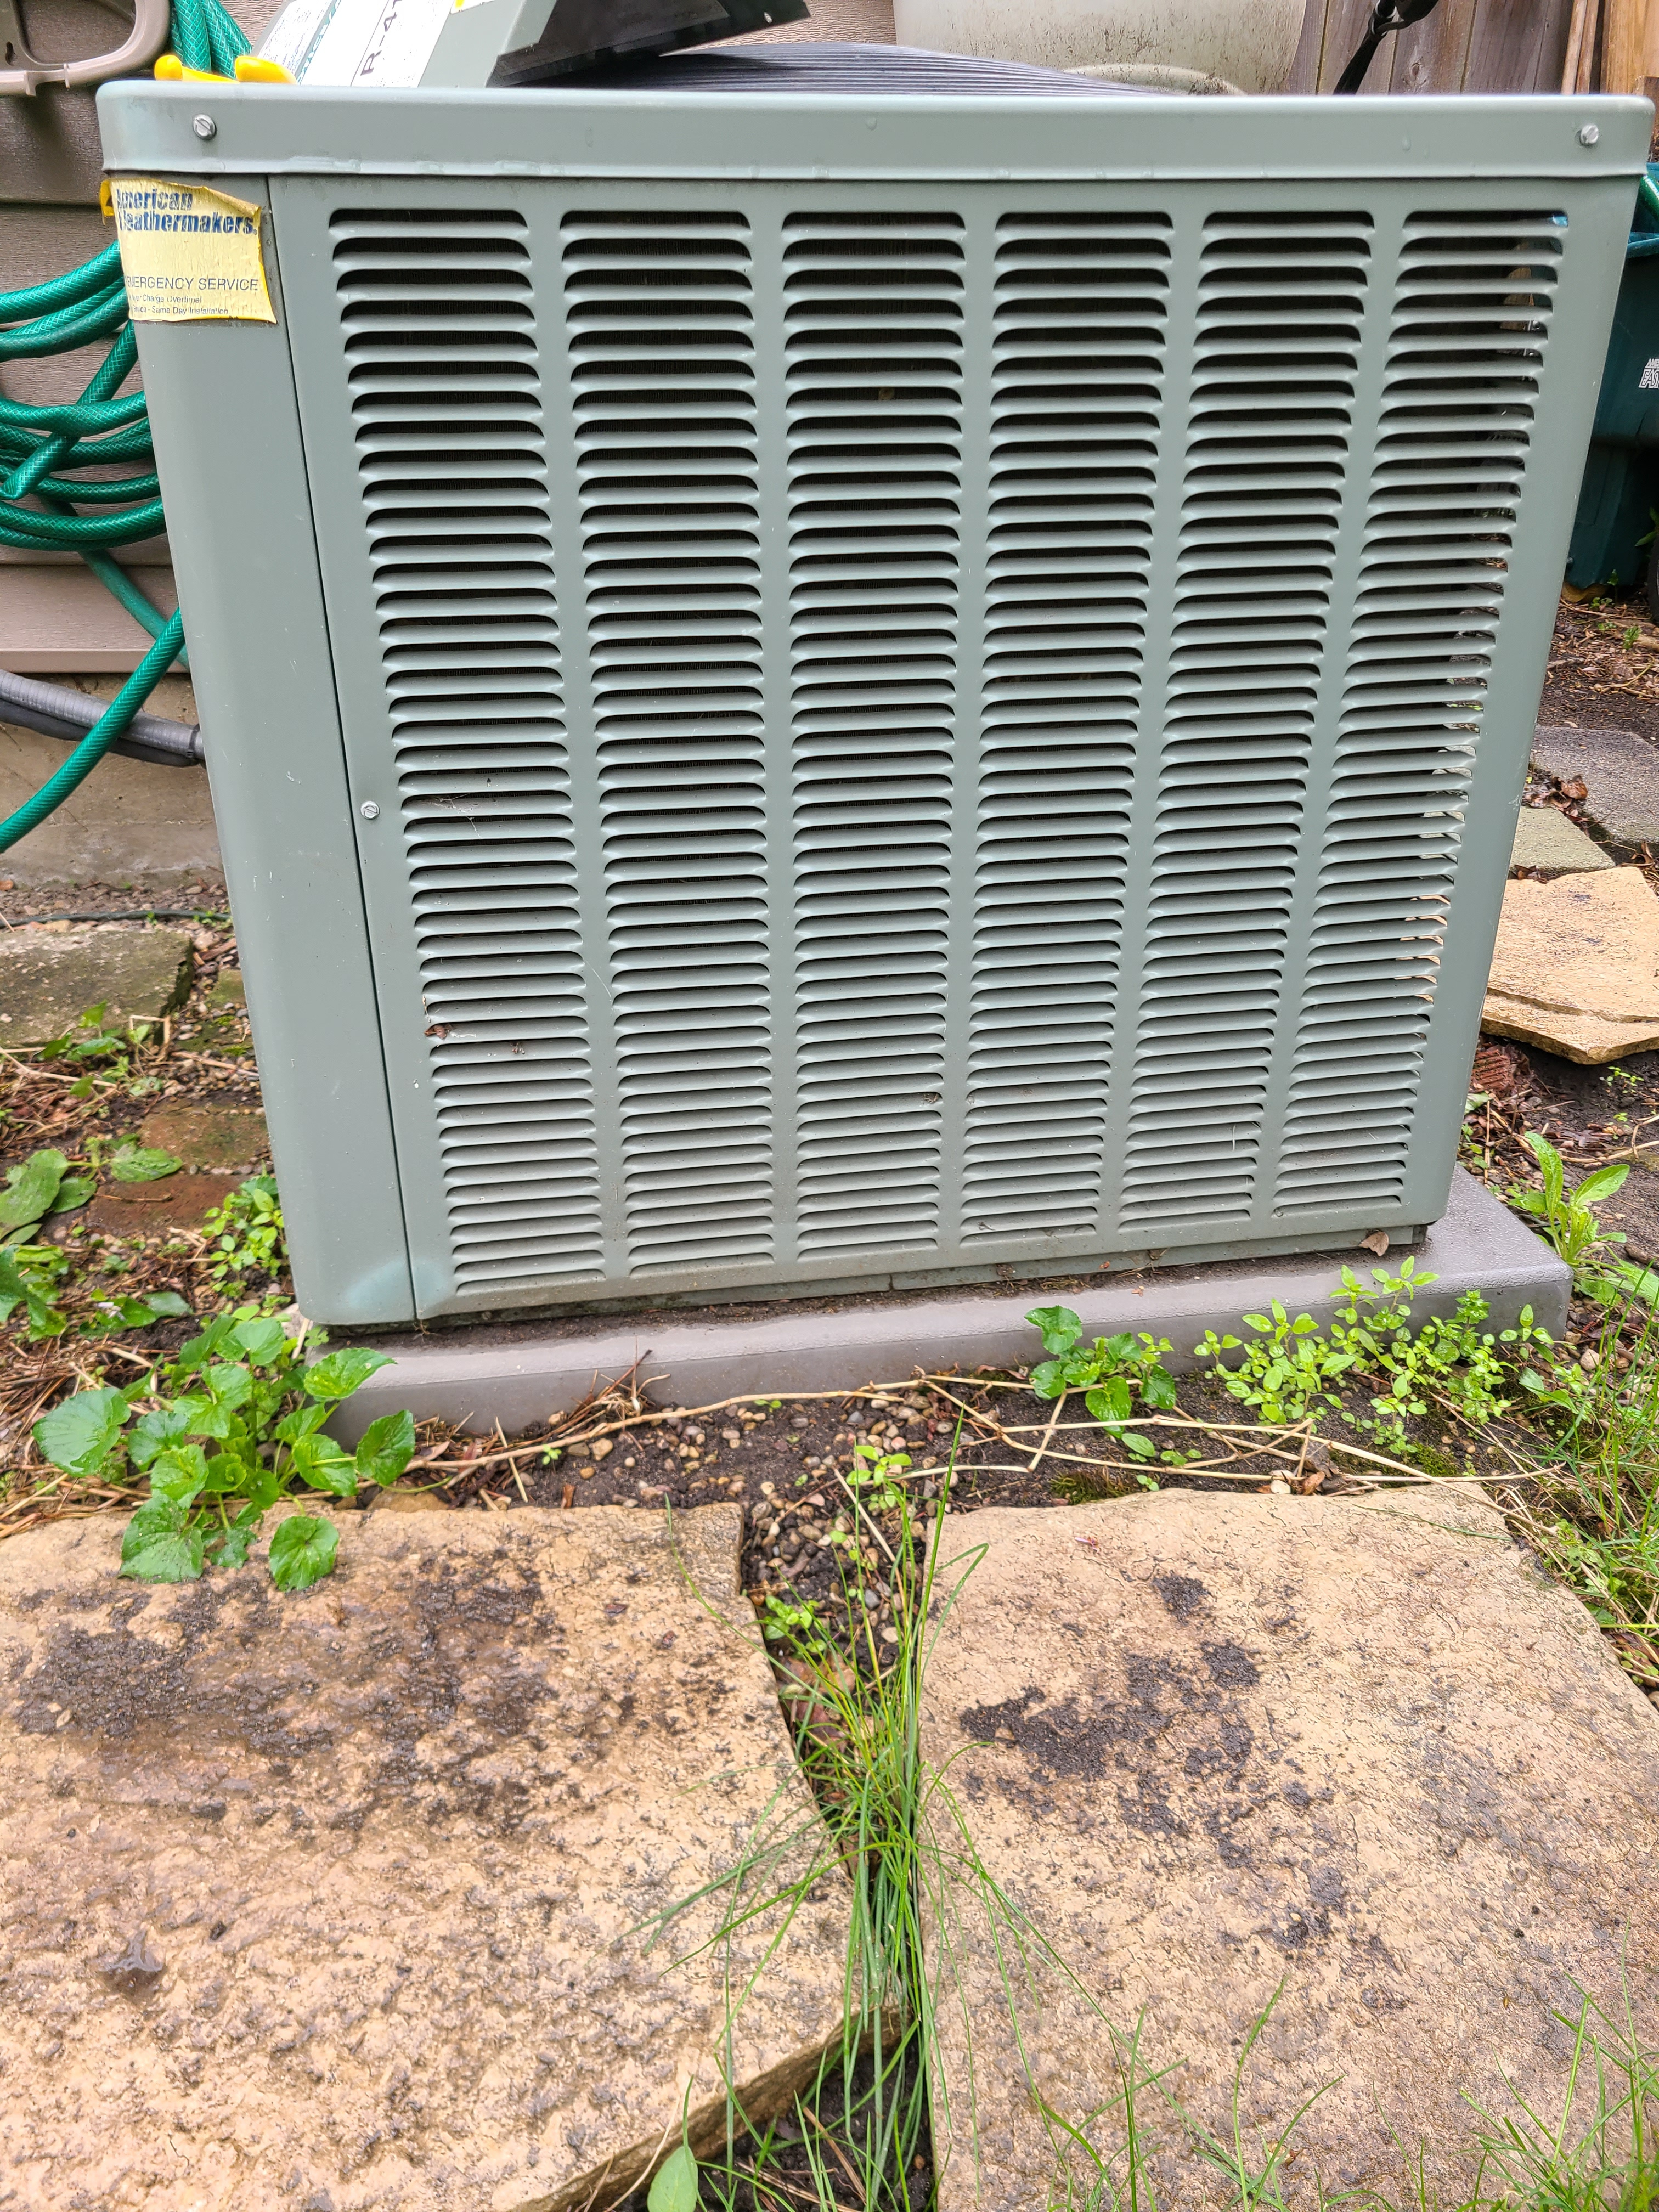 RHEEM 410a system cleaned and ready for spring/ summer operation.